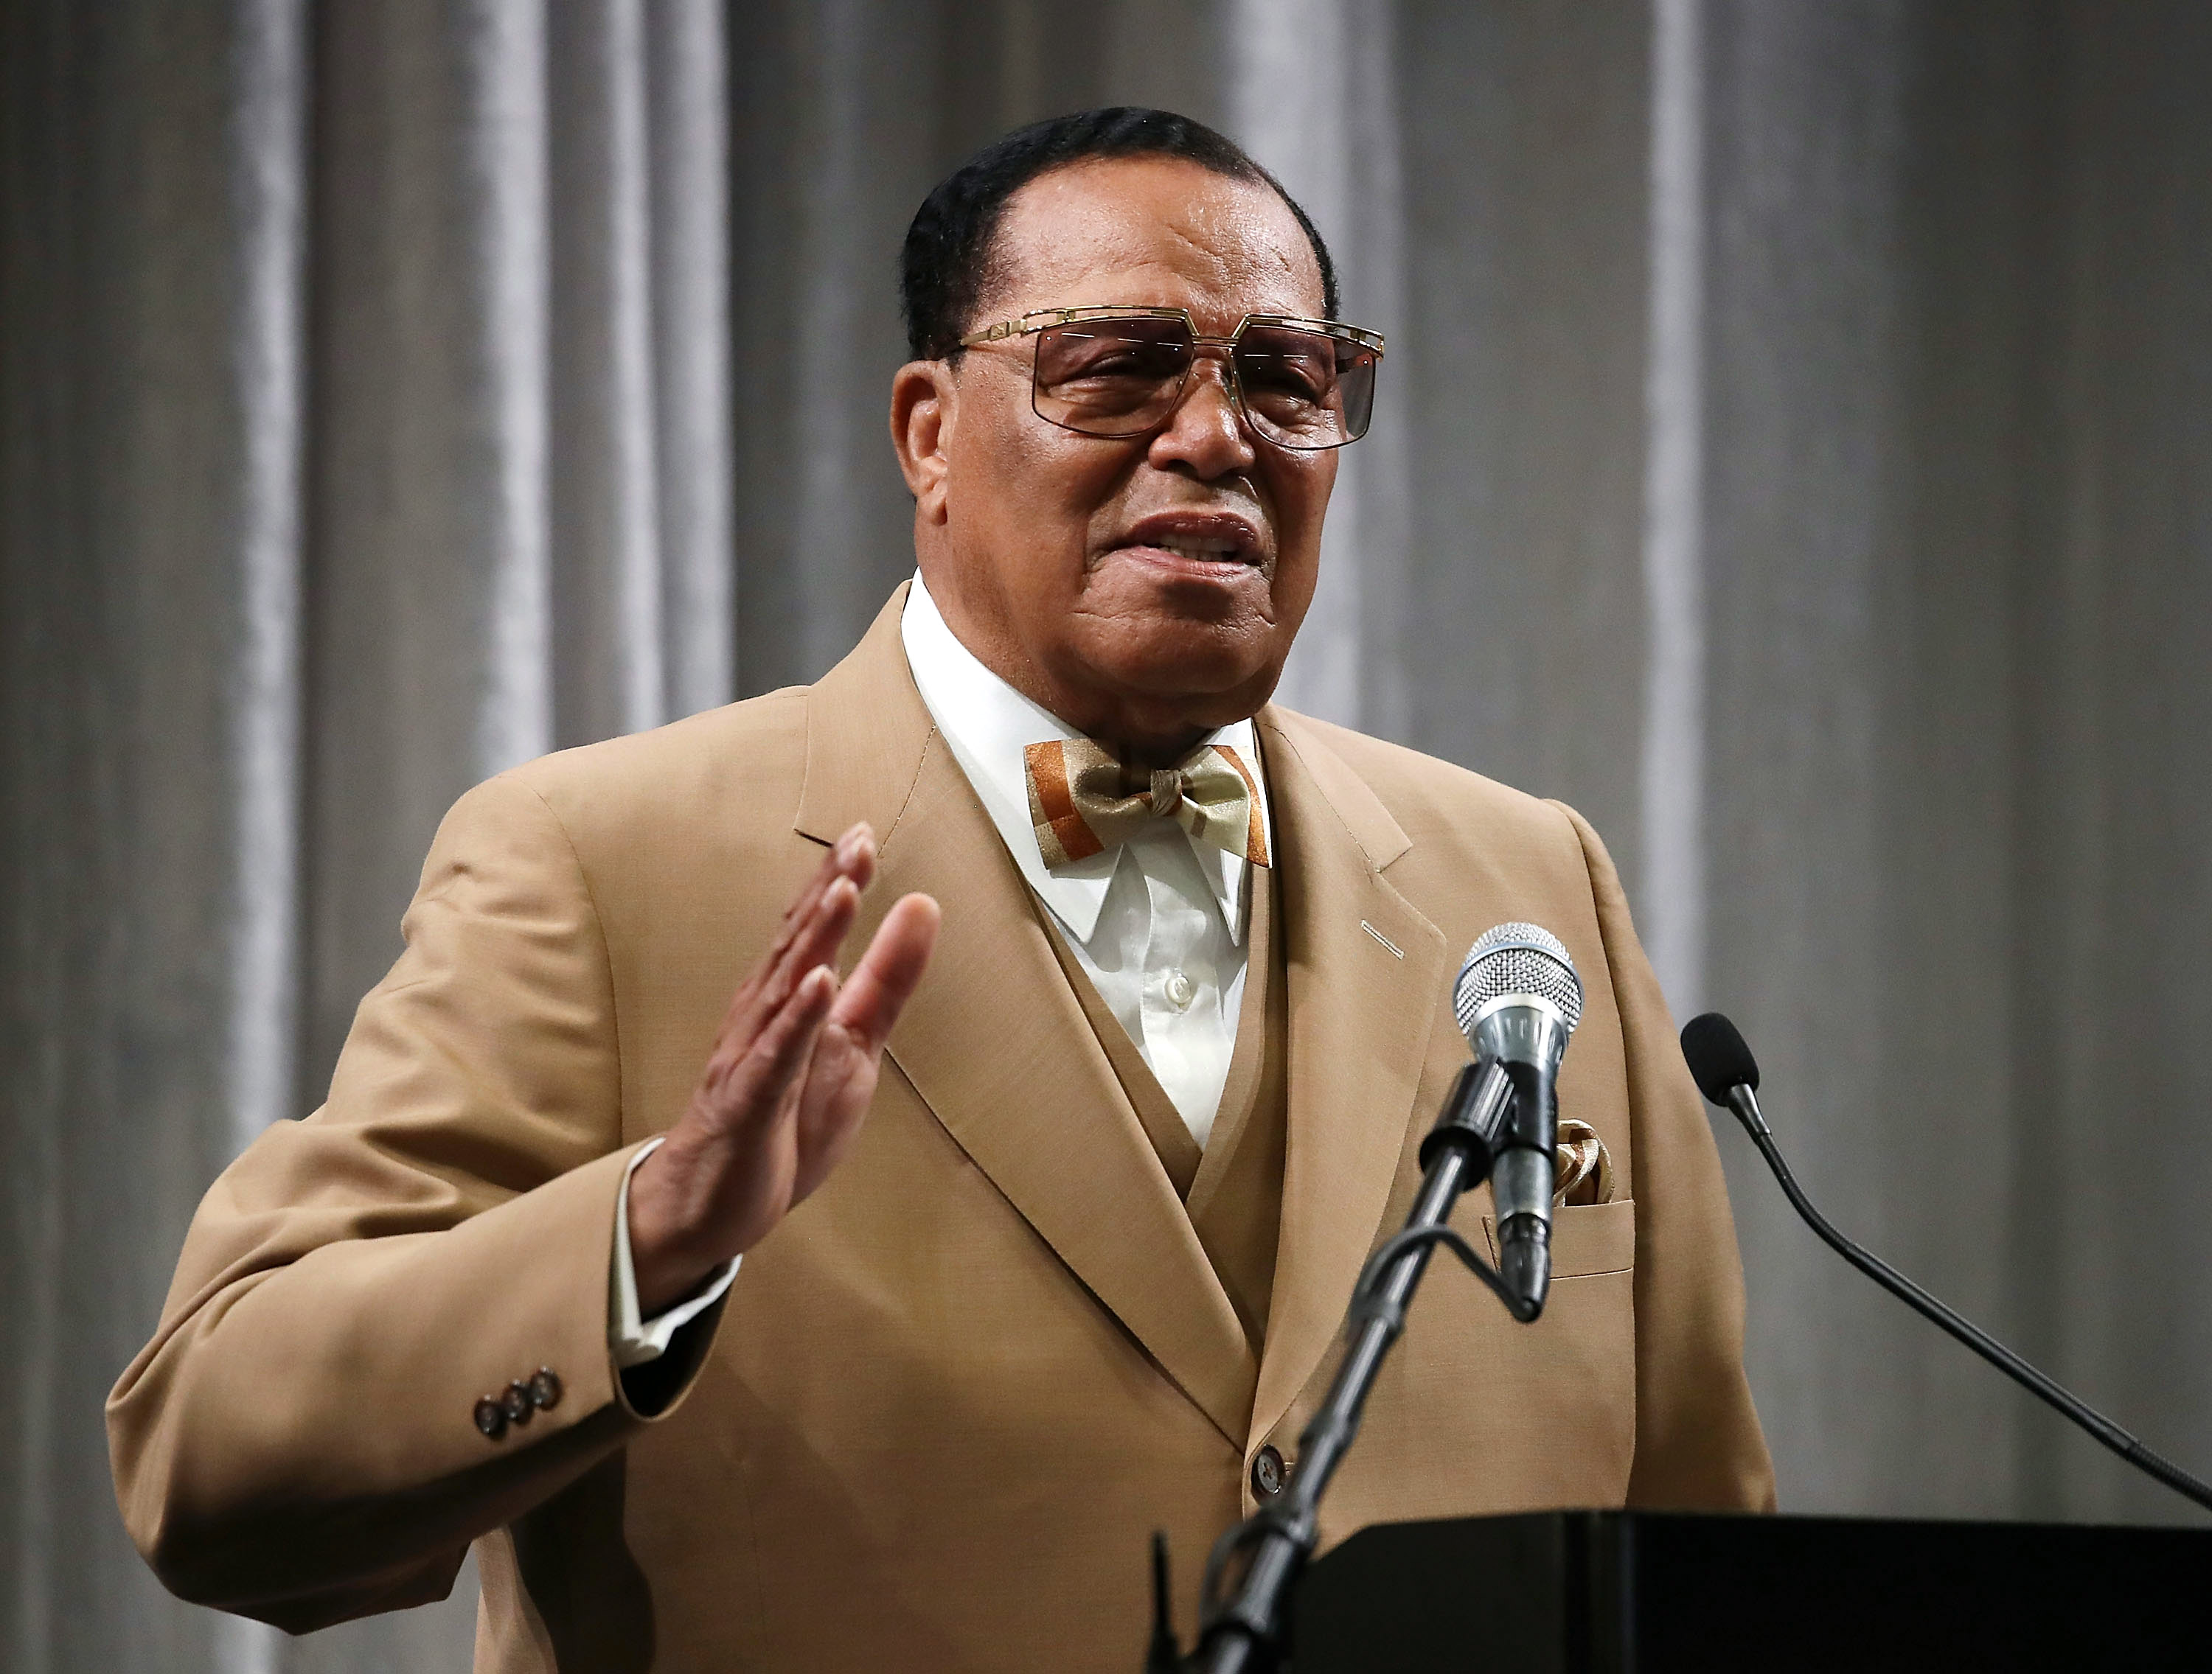 "WASHINGTON, DC - NOVEMBER 16: Nation of Islam Minister Louis Farrakhan delivers a speech and talks about U.S. President Donald Trump, at the Watergate Hotel, on November 16, 2017 in Washington, DC. This is the first time that Minister Farrakhan will speak directly to the 45th President of the United States and will address ""issues of importance regarding Americas domestic challenges, her place on the world stage and her future."" (Photo by Mark Wilson/Getty Images)"